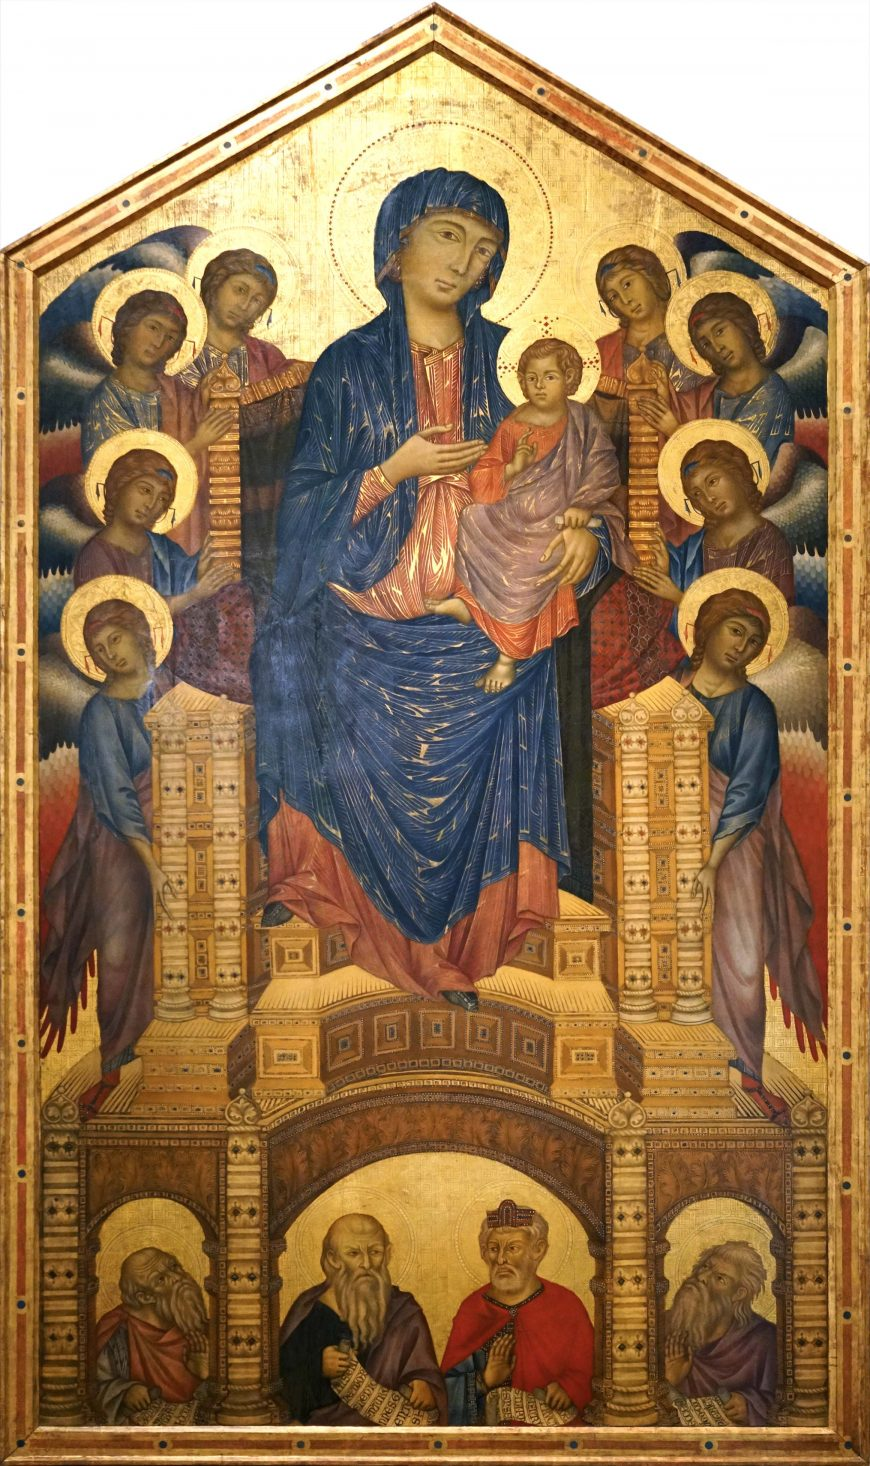 Cimabue, Santa Trinita Madonna and Child Enthroned, 1280-90, tempera on panel, 385 x 223 cm (Galleria degli Uffizi, Florence)